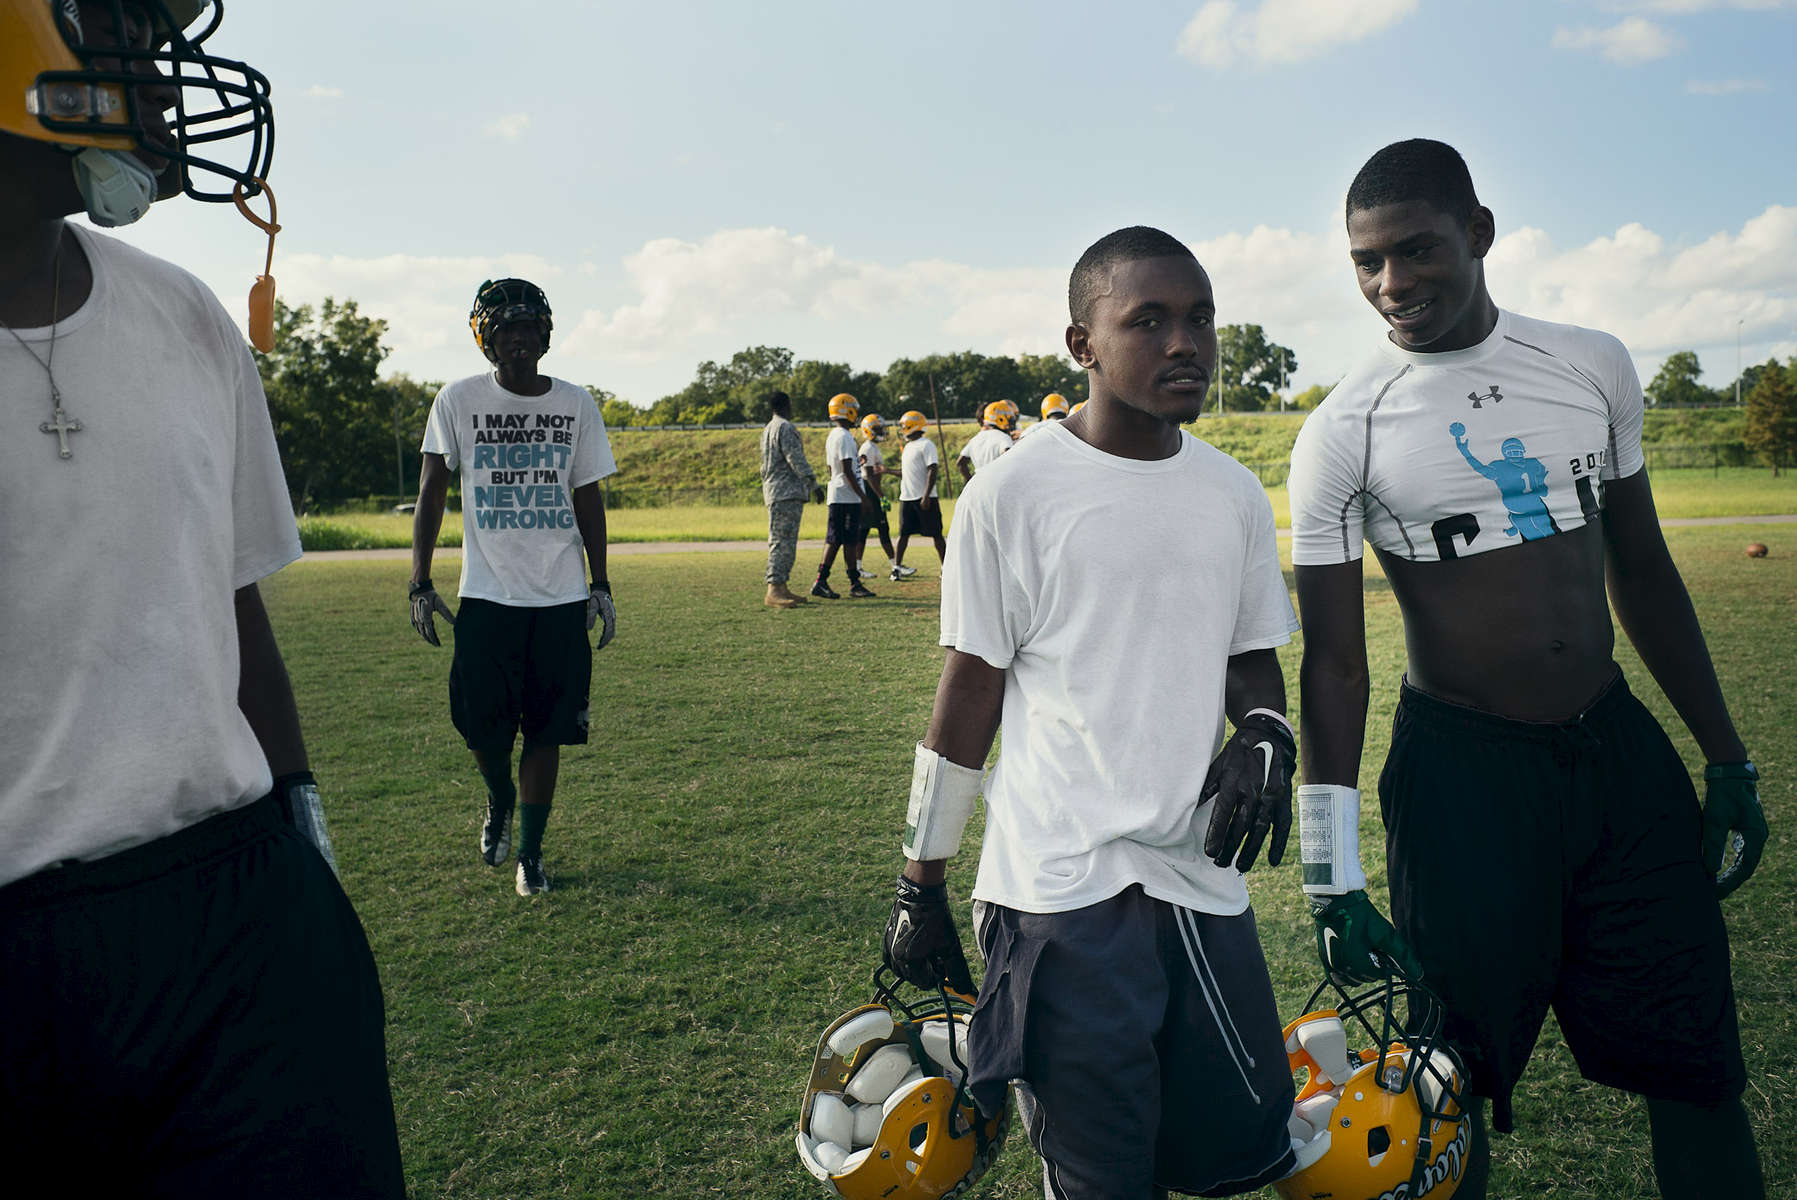 BIRMINGHAM, AL – SEPTEMBER 10, 2015: Quintarius Monroe (center) speaks with Cornelius Mosley (right) as they break from football practice at Woodlawn High School. A type 1 diabetic, Monroe requires frequent blood sugar testing and supervision when self-administering insulin. When care from qualified personnel at his school in Center Point became unavailable, Monroe was forced to transfer several miles away from his locally zoned school to attend Woodlawn High School. The Americans with Disabilities Act requires schools to provide {quote}reasonable accommodation{quote} for students with medical conditions, but given that most schools no longer retain school nurses, many schools are failing to provide adequate care for their students.CREDIT: Bob Miller for The New York Times